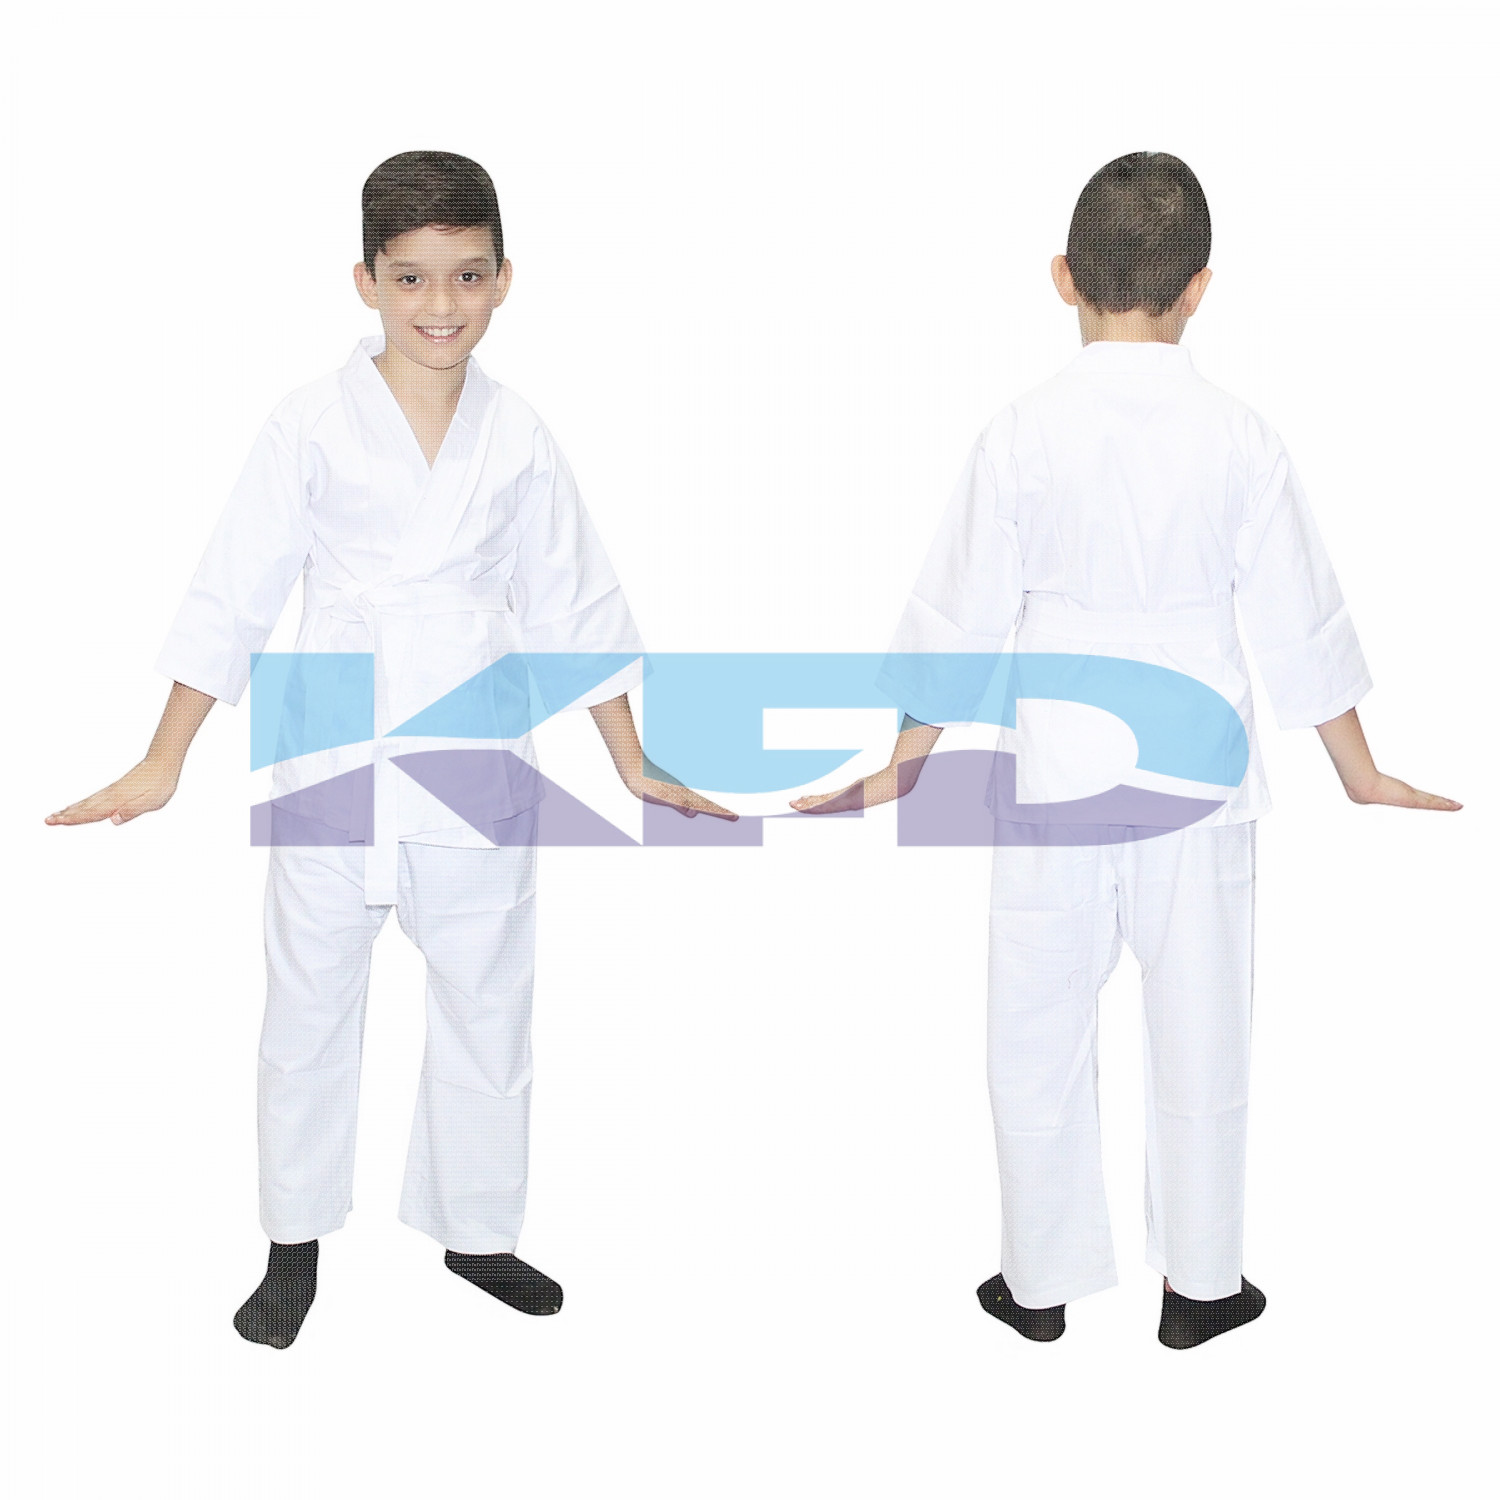 Karate fancy dress for kids,Martial Art/Fighting Costume for School Annual function/Theme Party/Competition/Stage Shows Dress